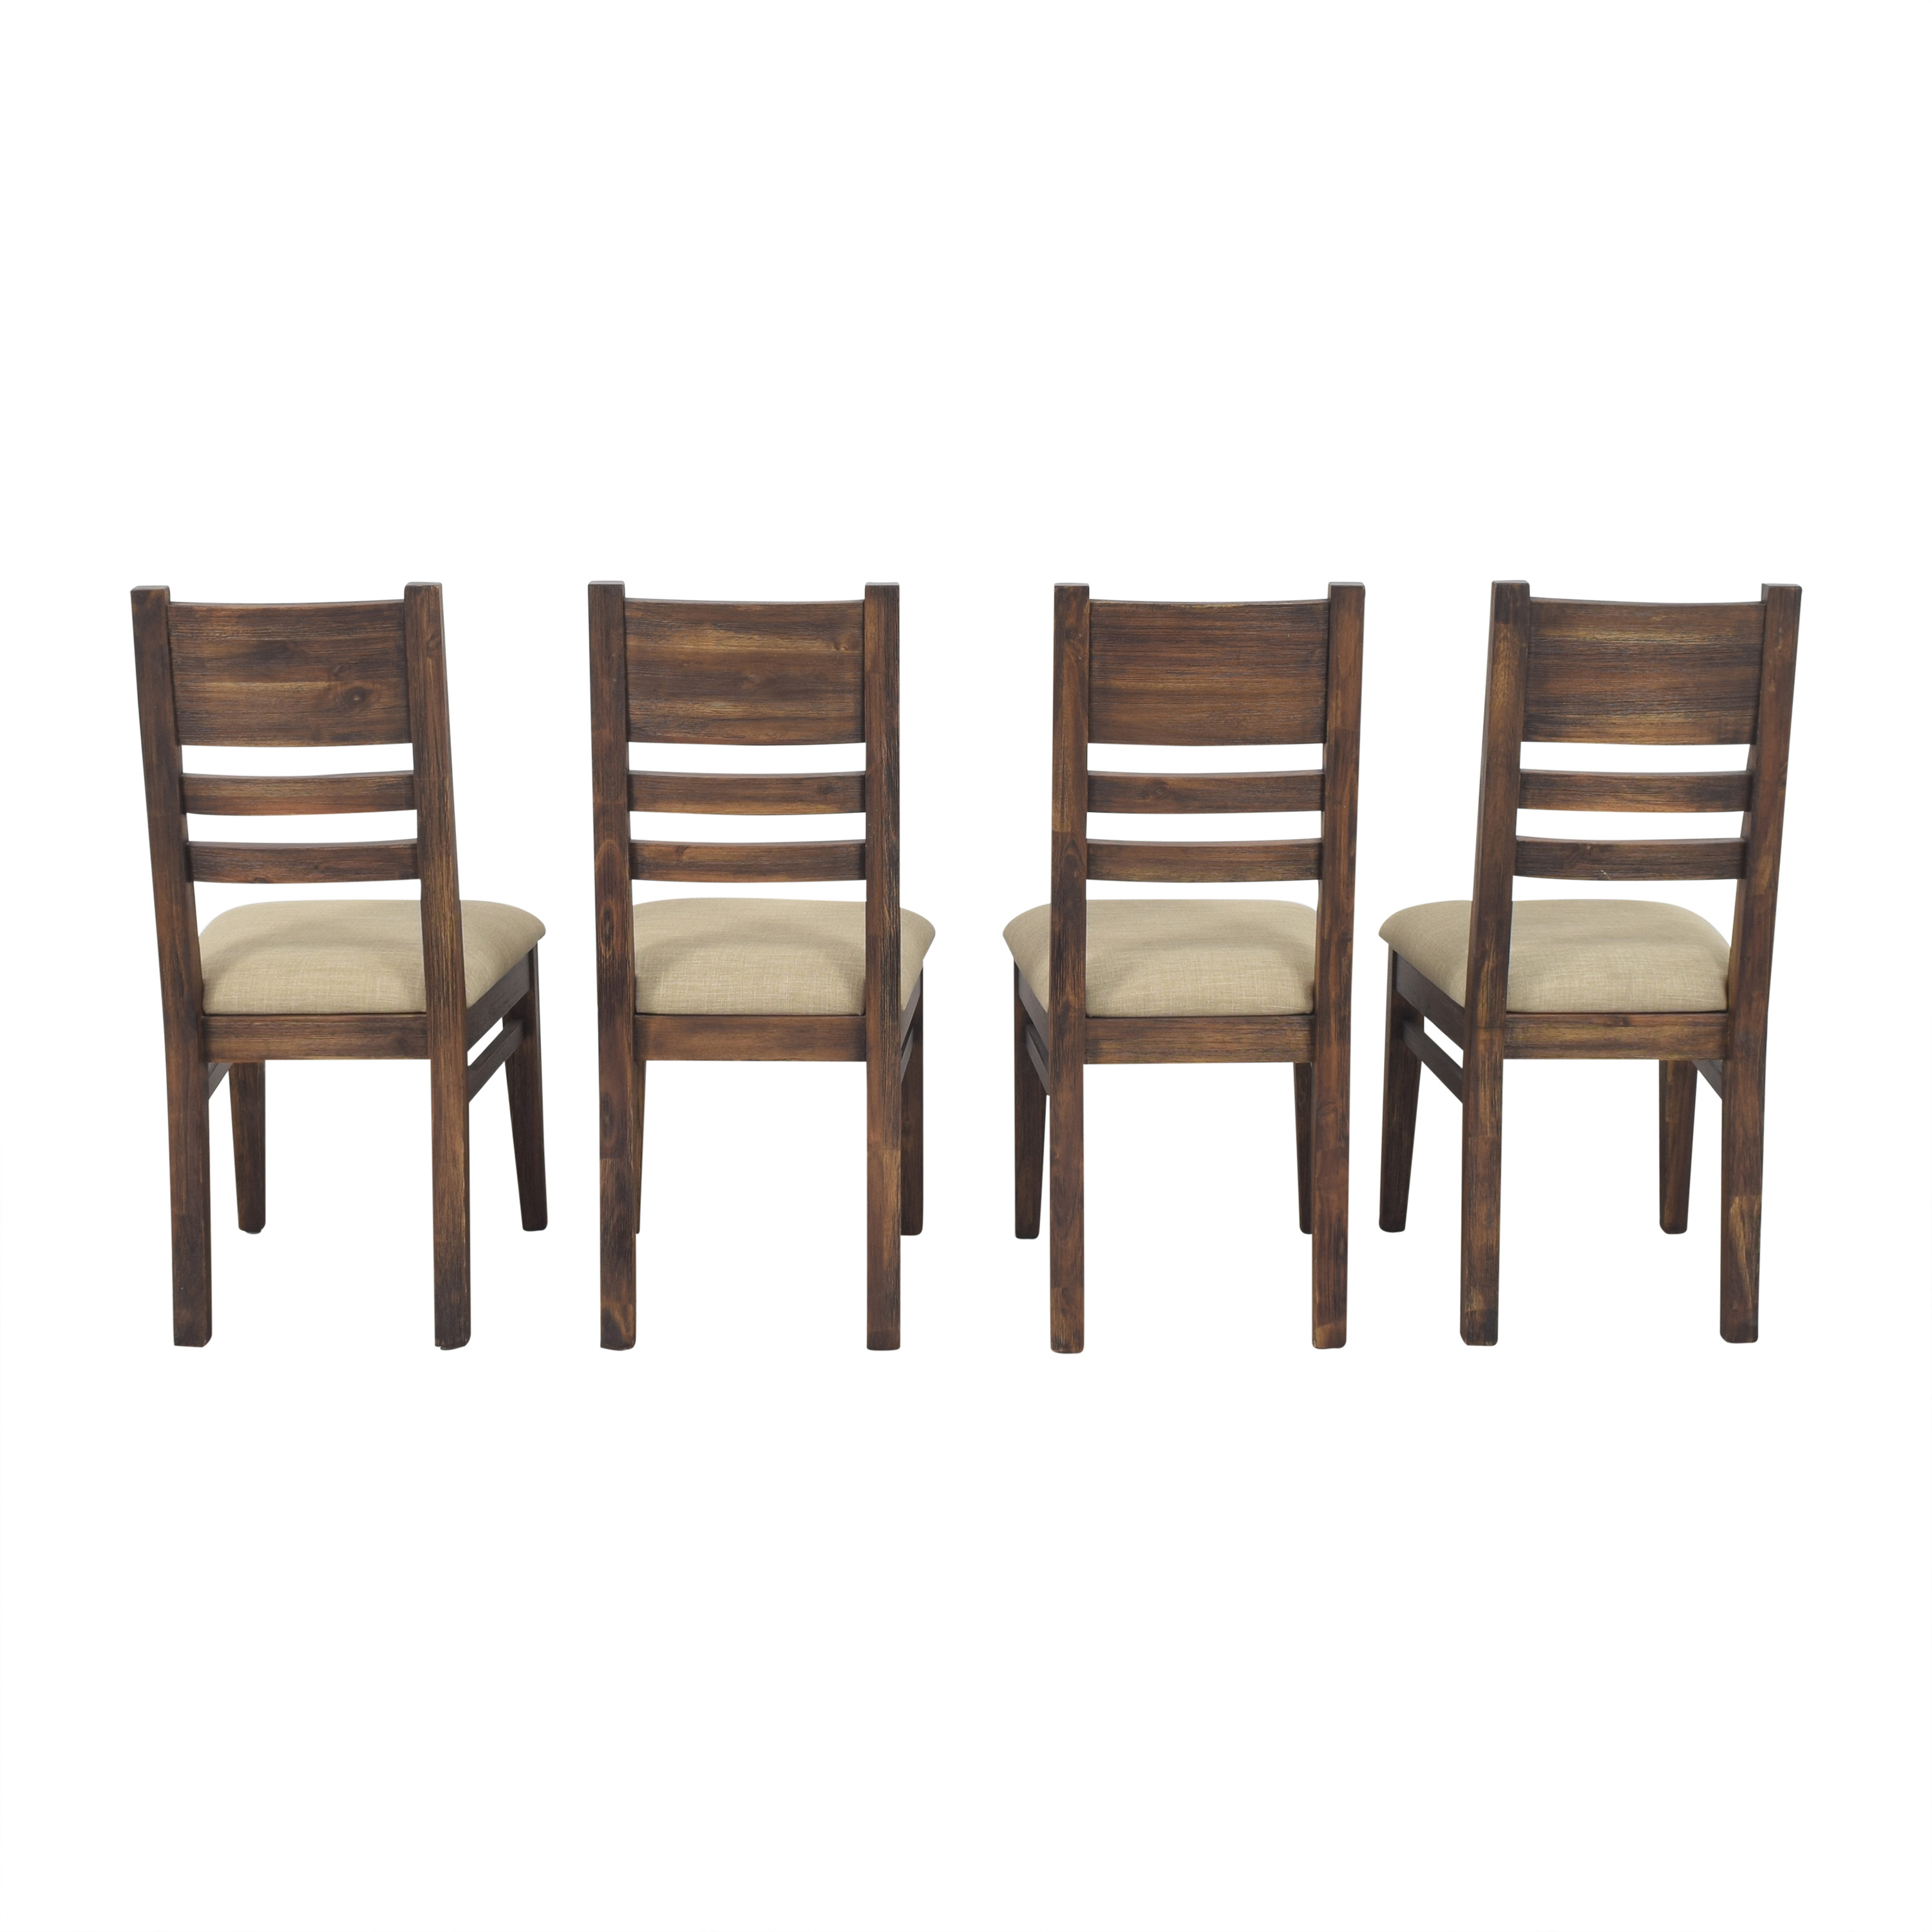 Macy's Avondale Dining Side Chairs sale